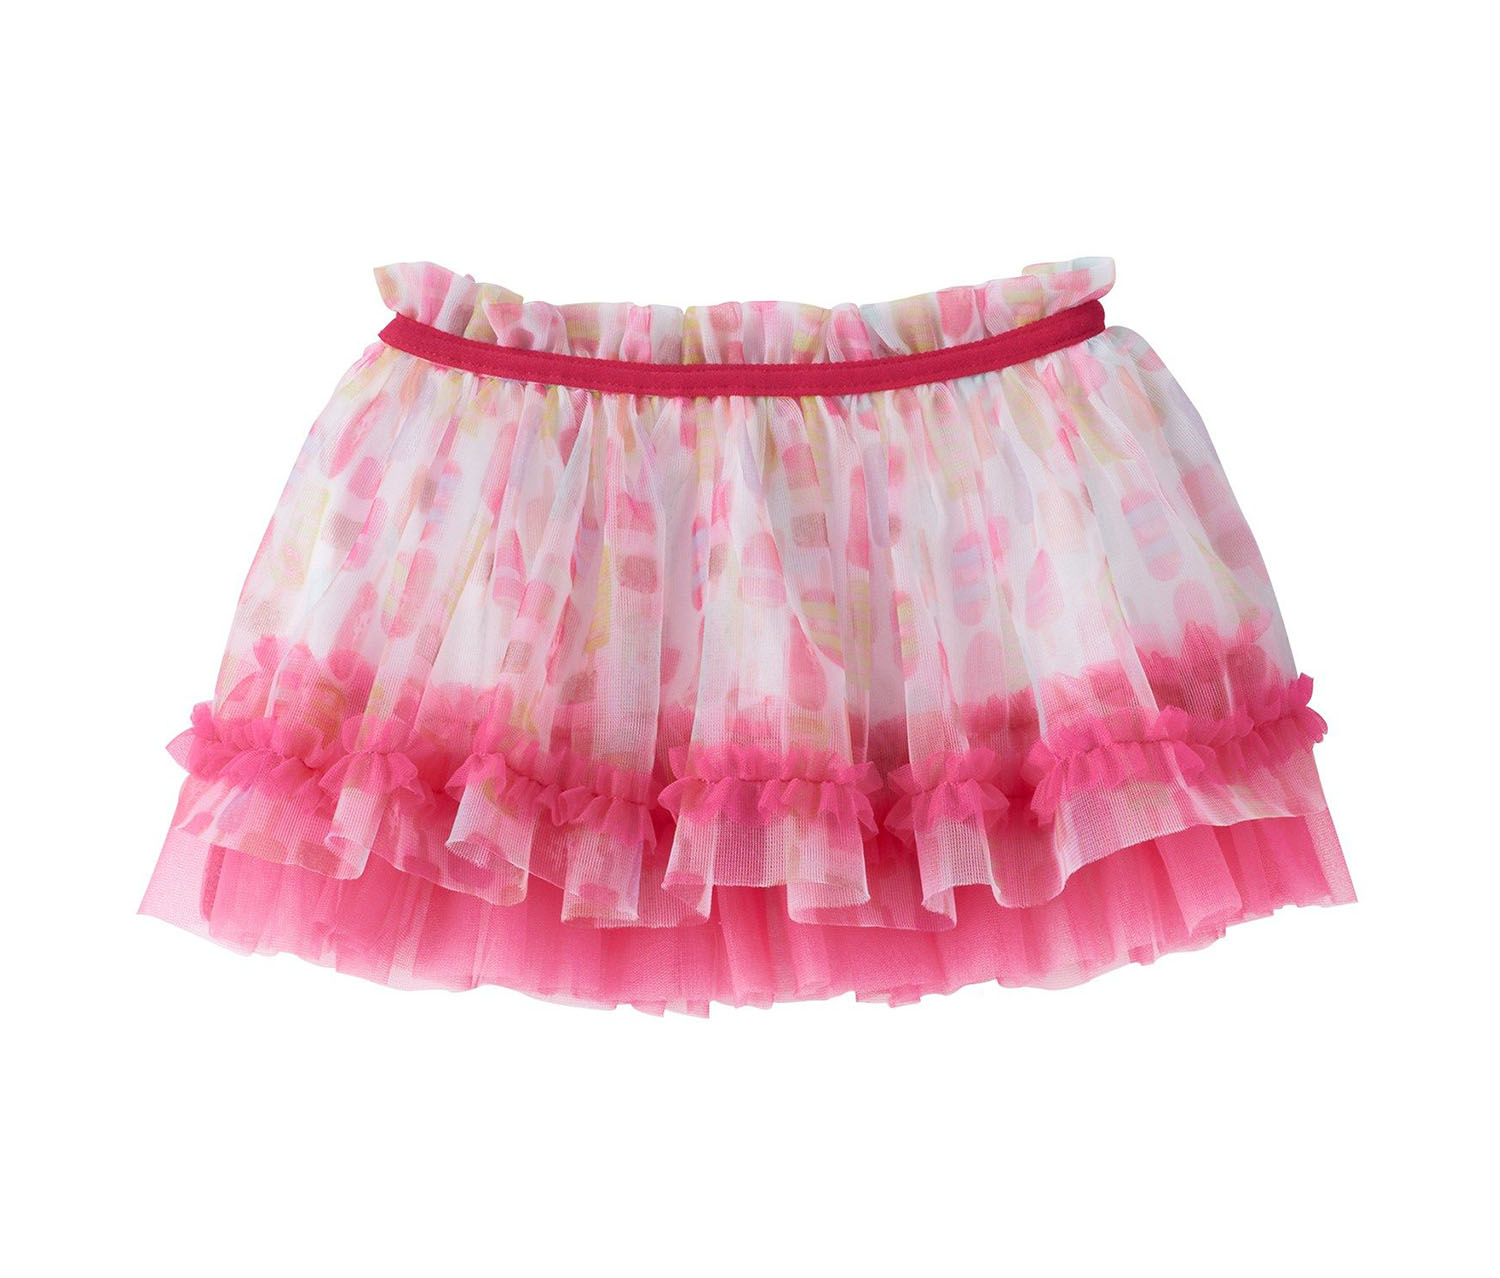 Baby Starters Baby Girls Skirt, Pink